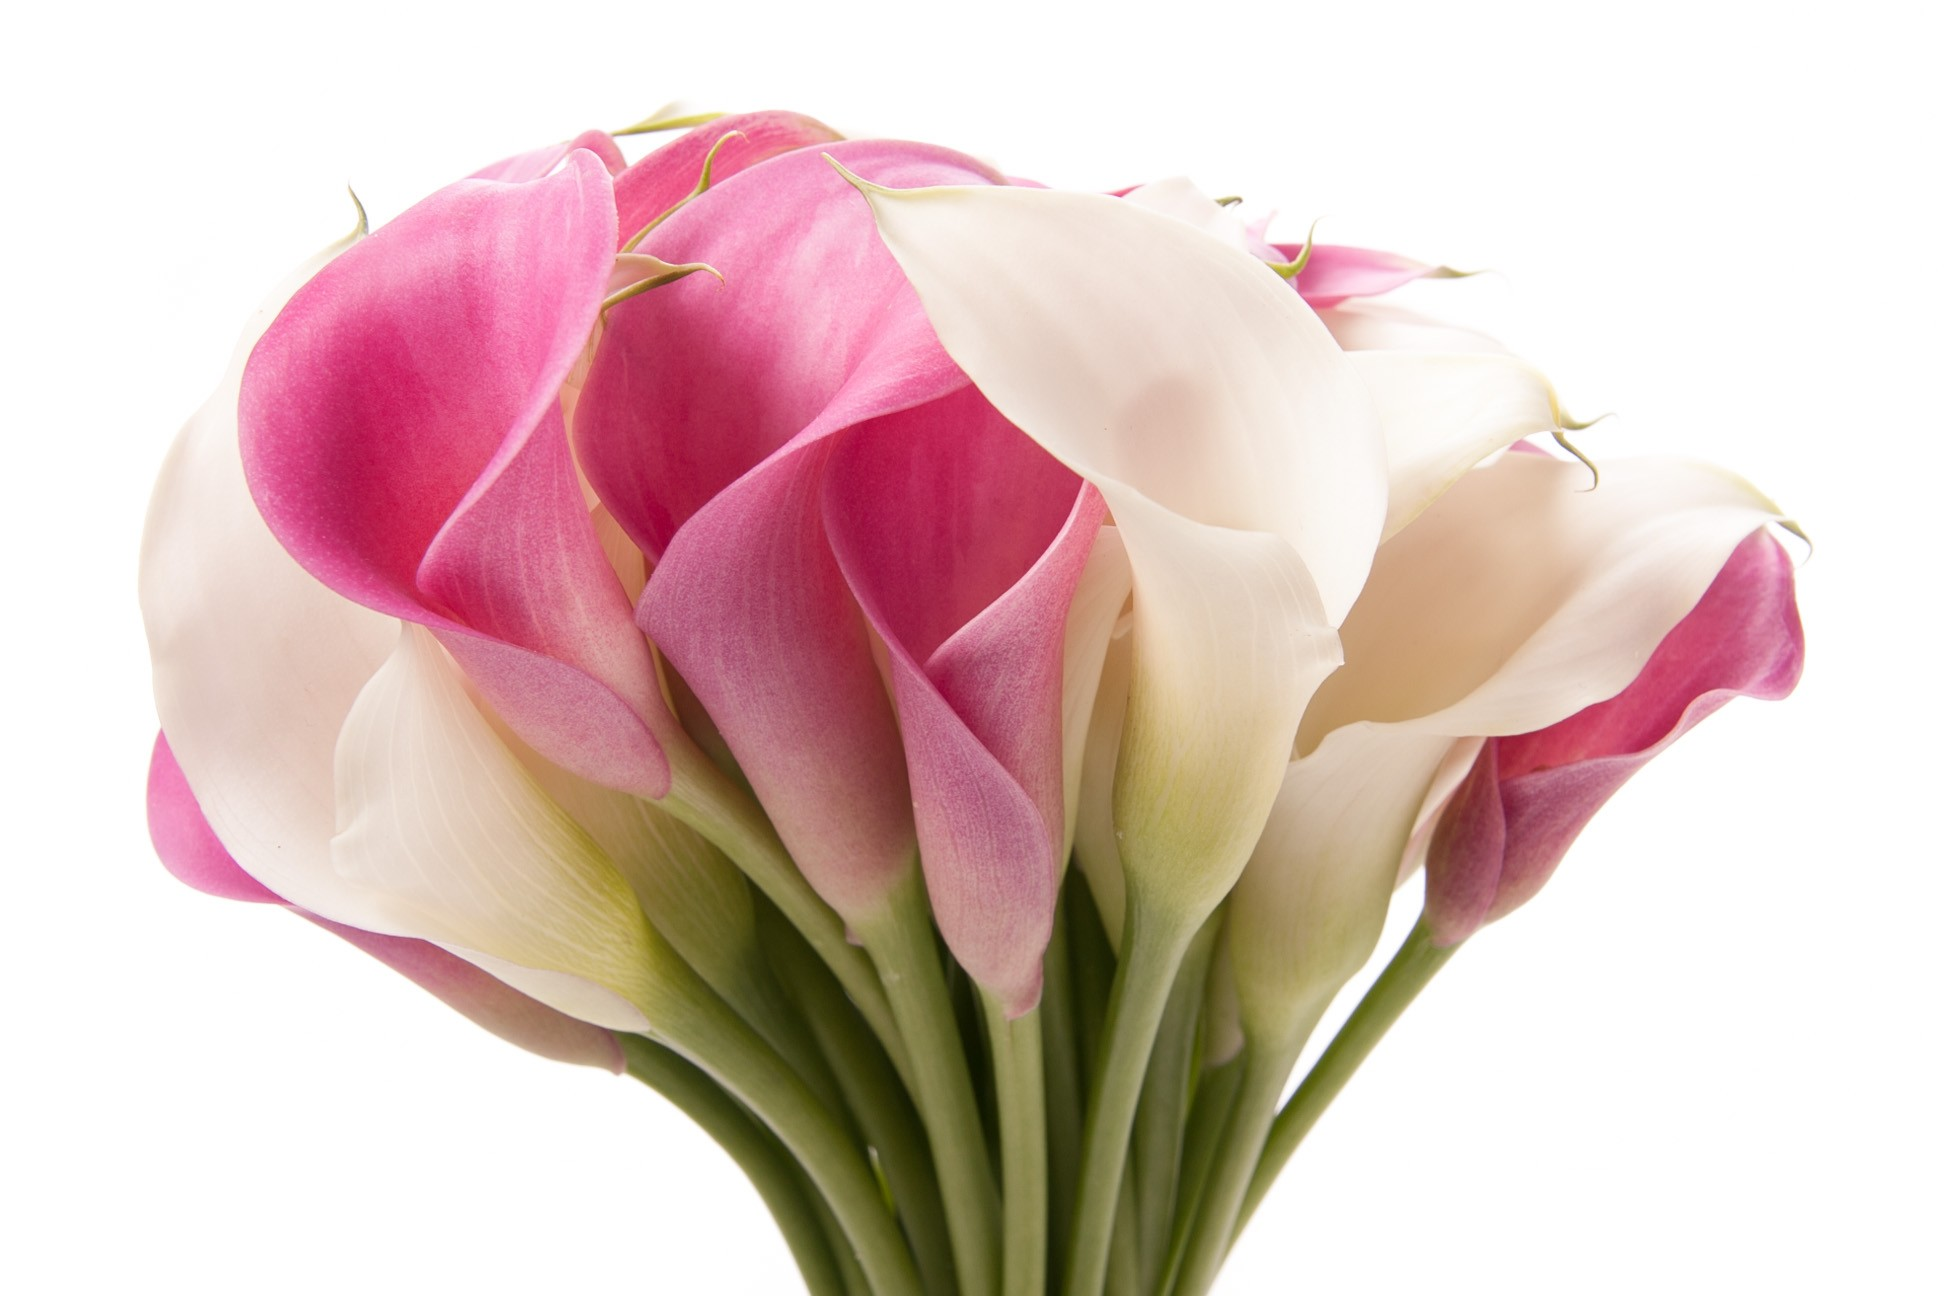 Pink And White Calla Lily 1944x1296 Wallpaper Teahub Io